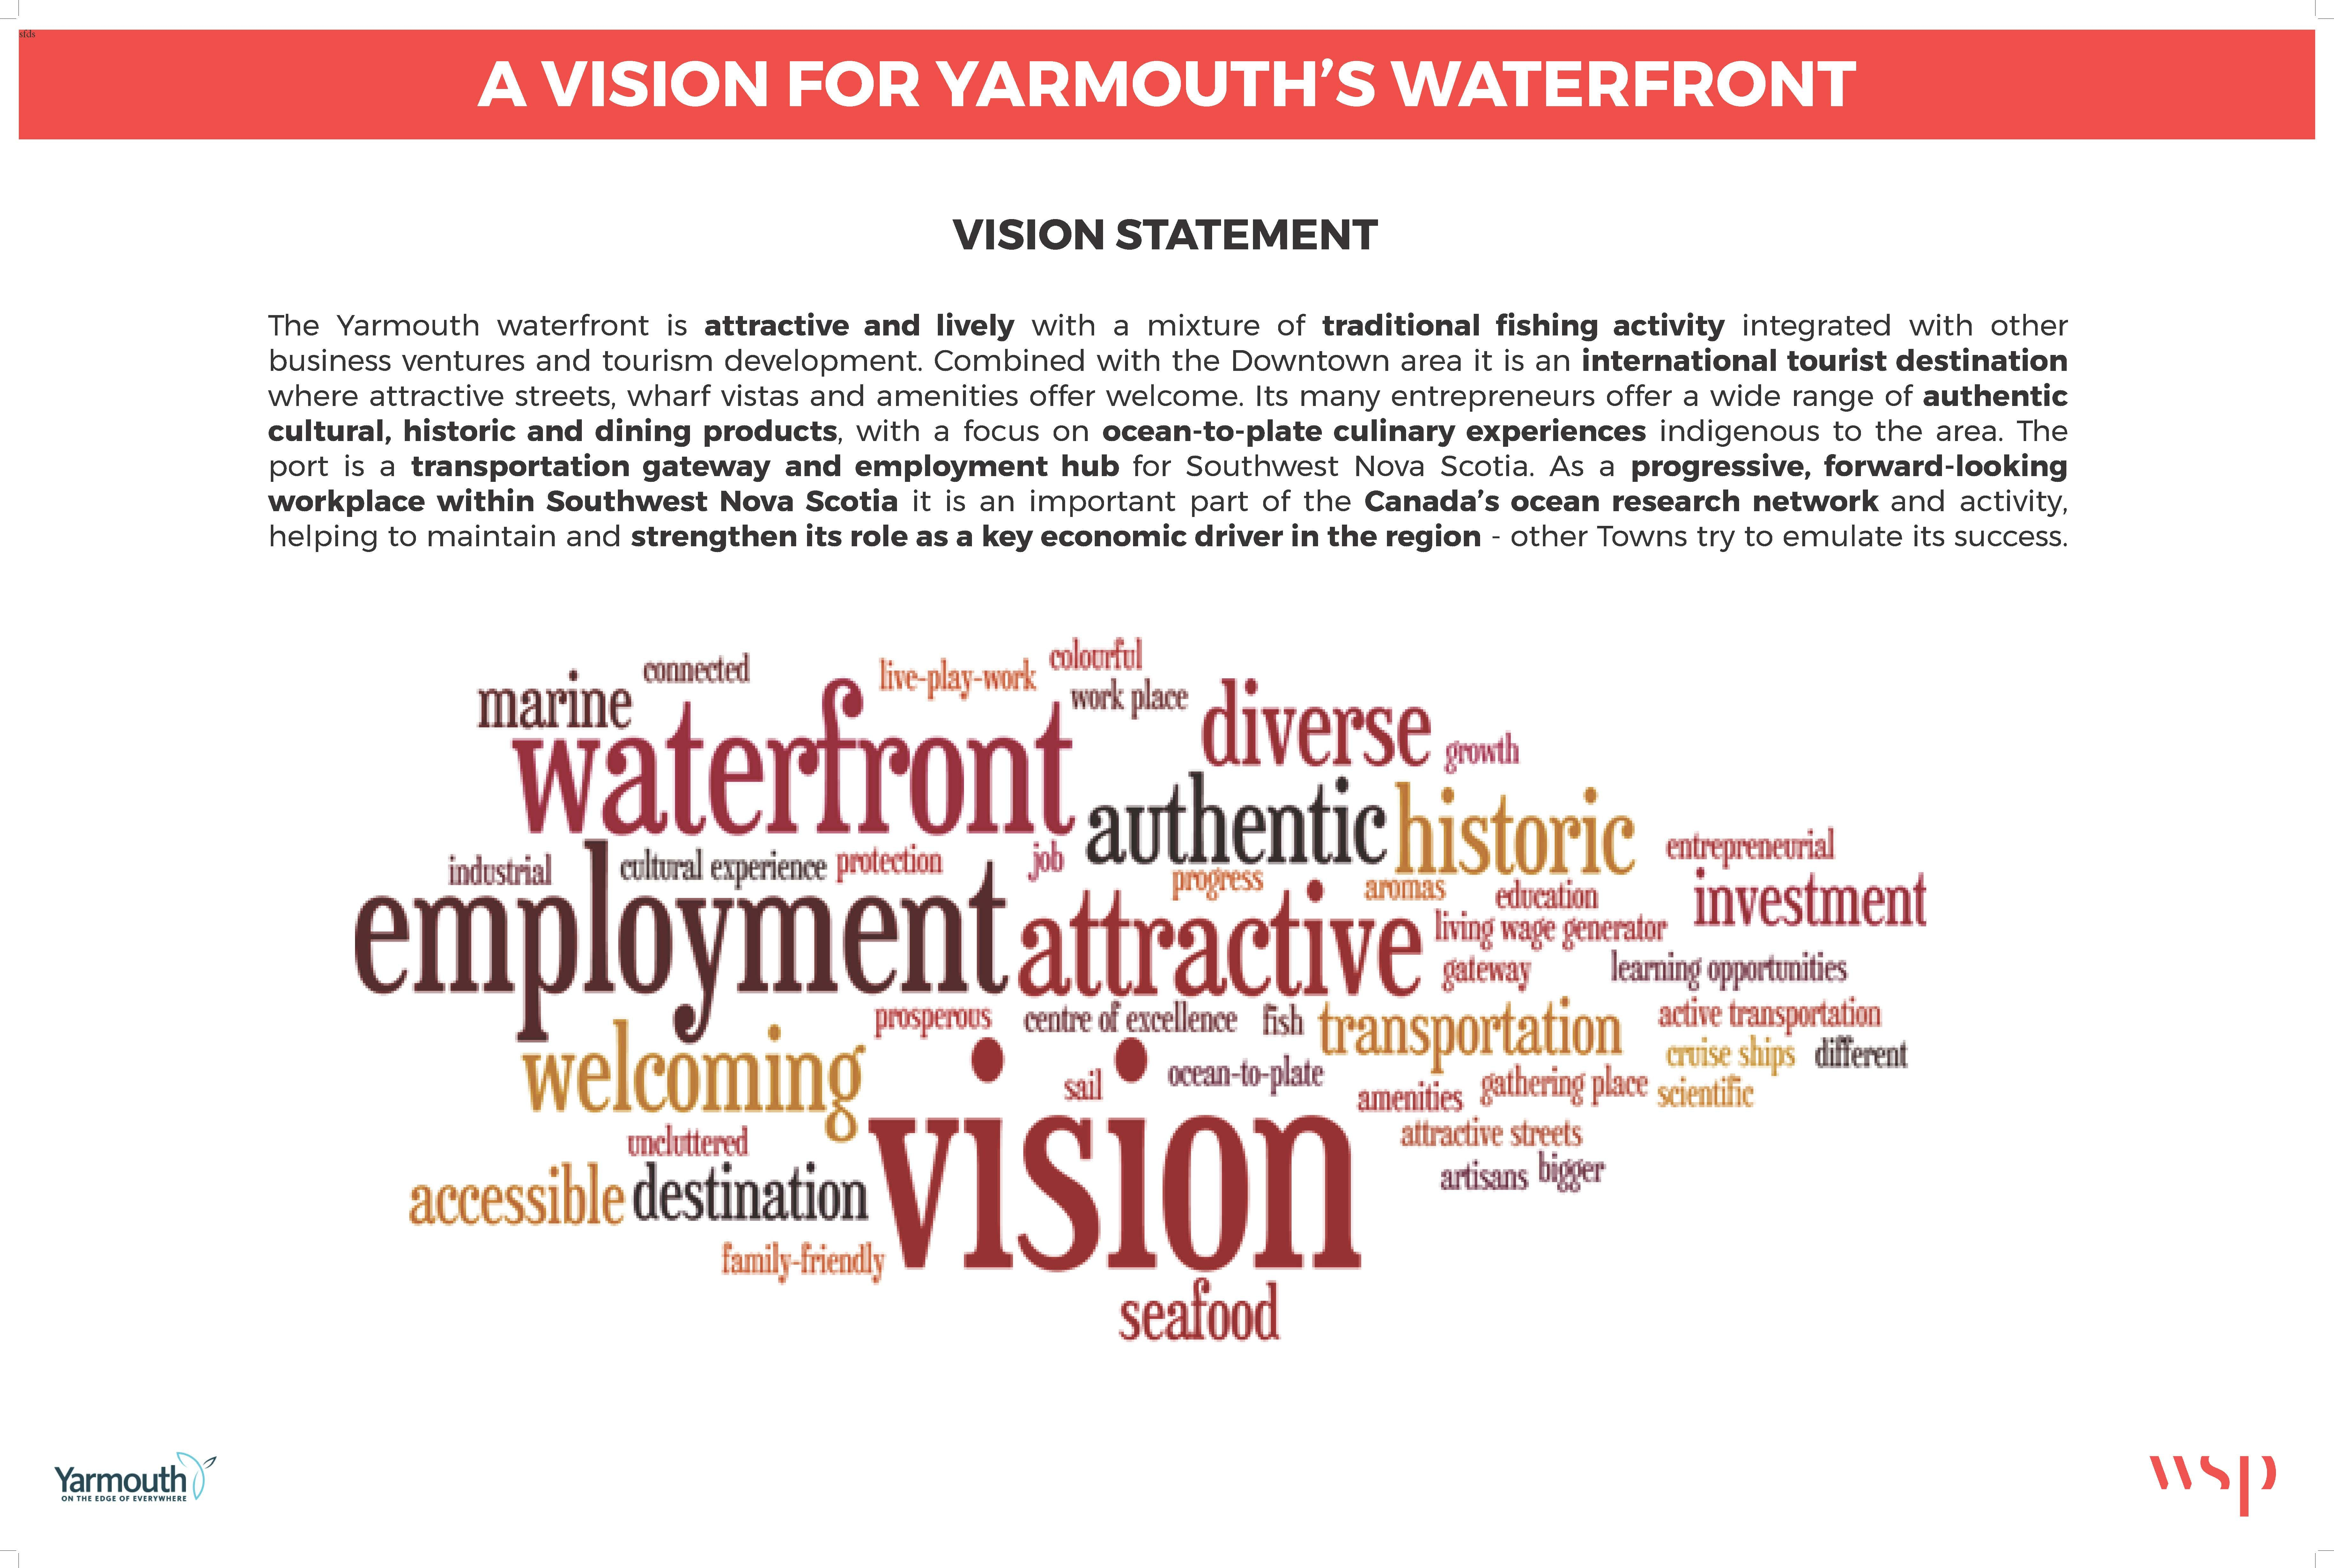 Public are invited to attend Waterfront Symposium on October 11 and 18 to contribute strategic plan for Yarmouth Waterfront.